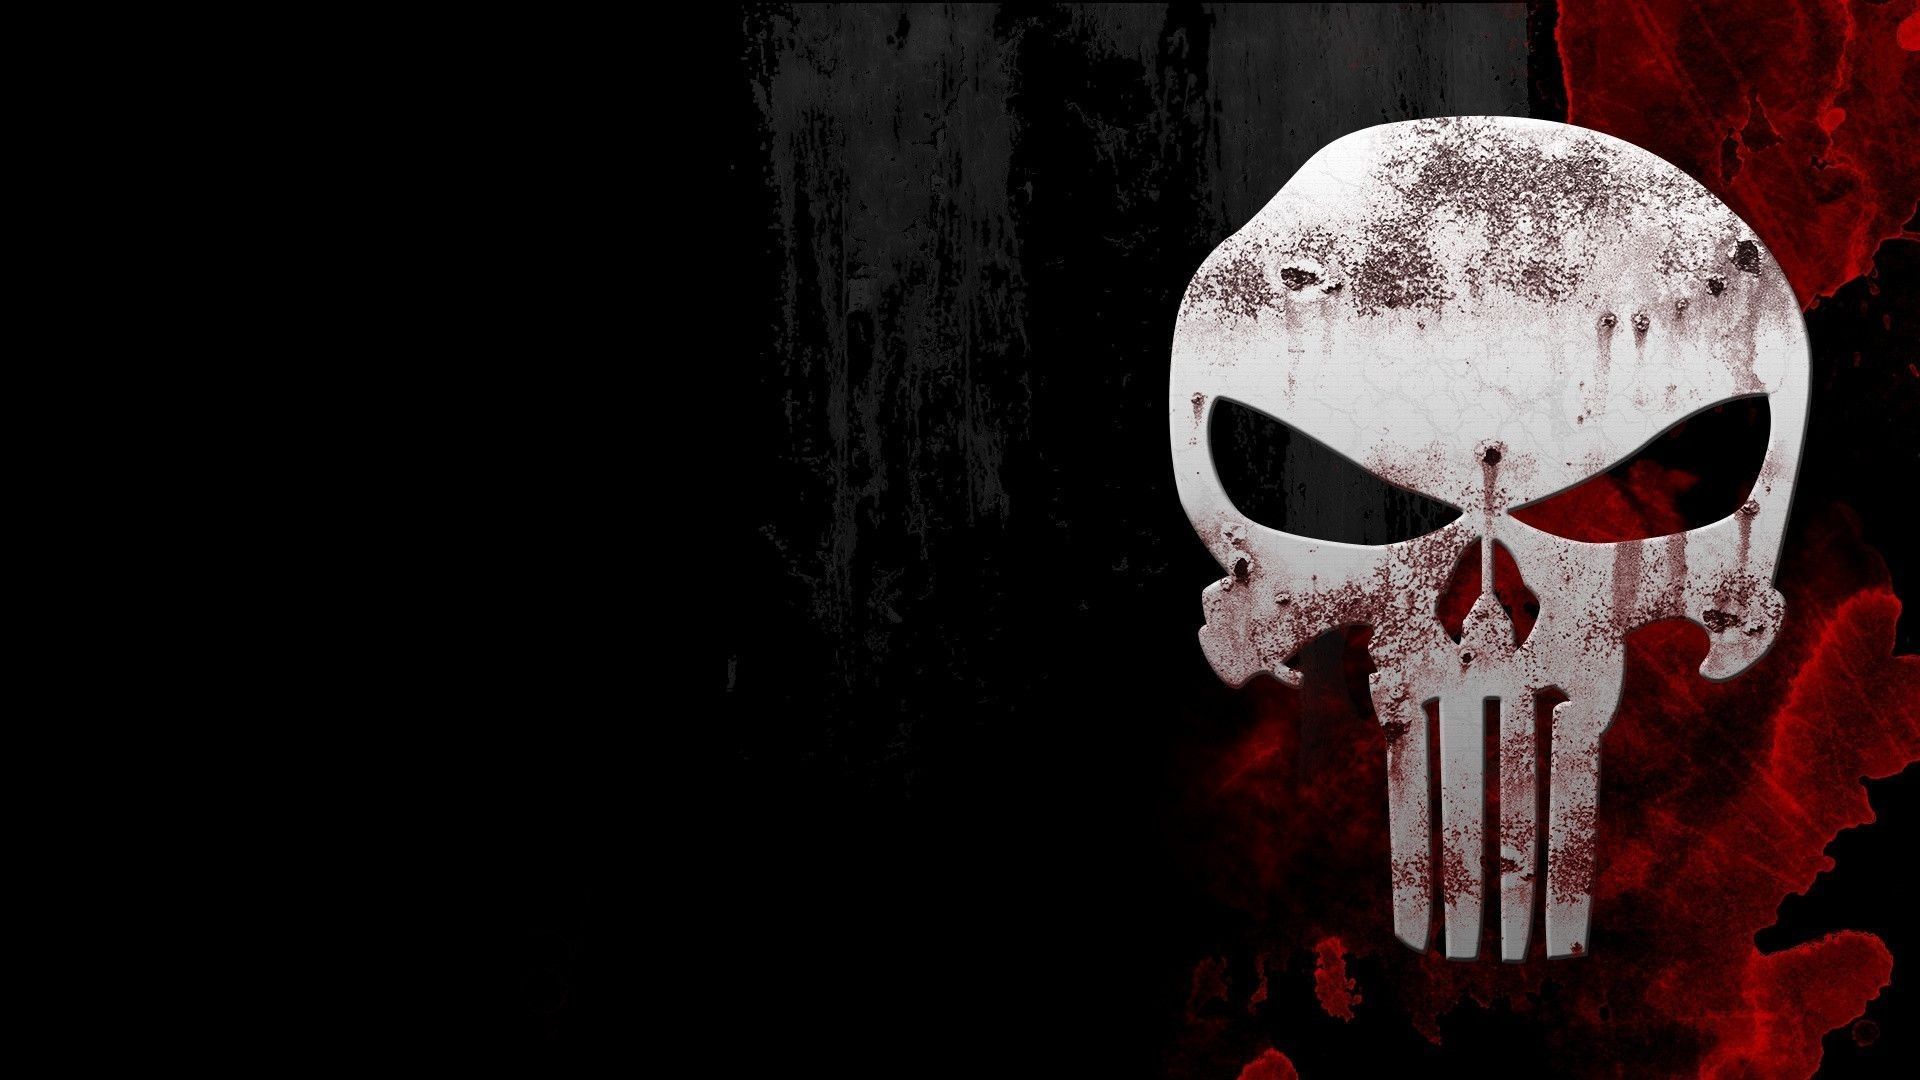 1920x1080 Awesome Skull Phone Wallpapers | HD Wallpapers | Pinterest | Skull wallpaper  and Wallpaper